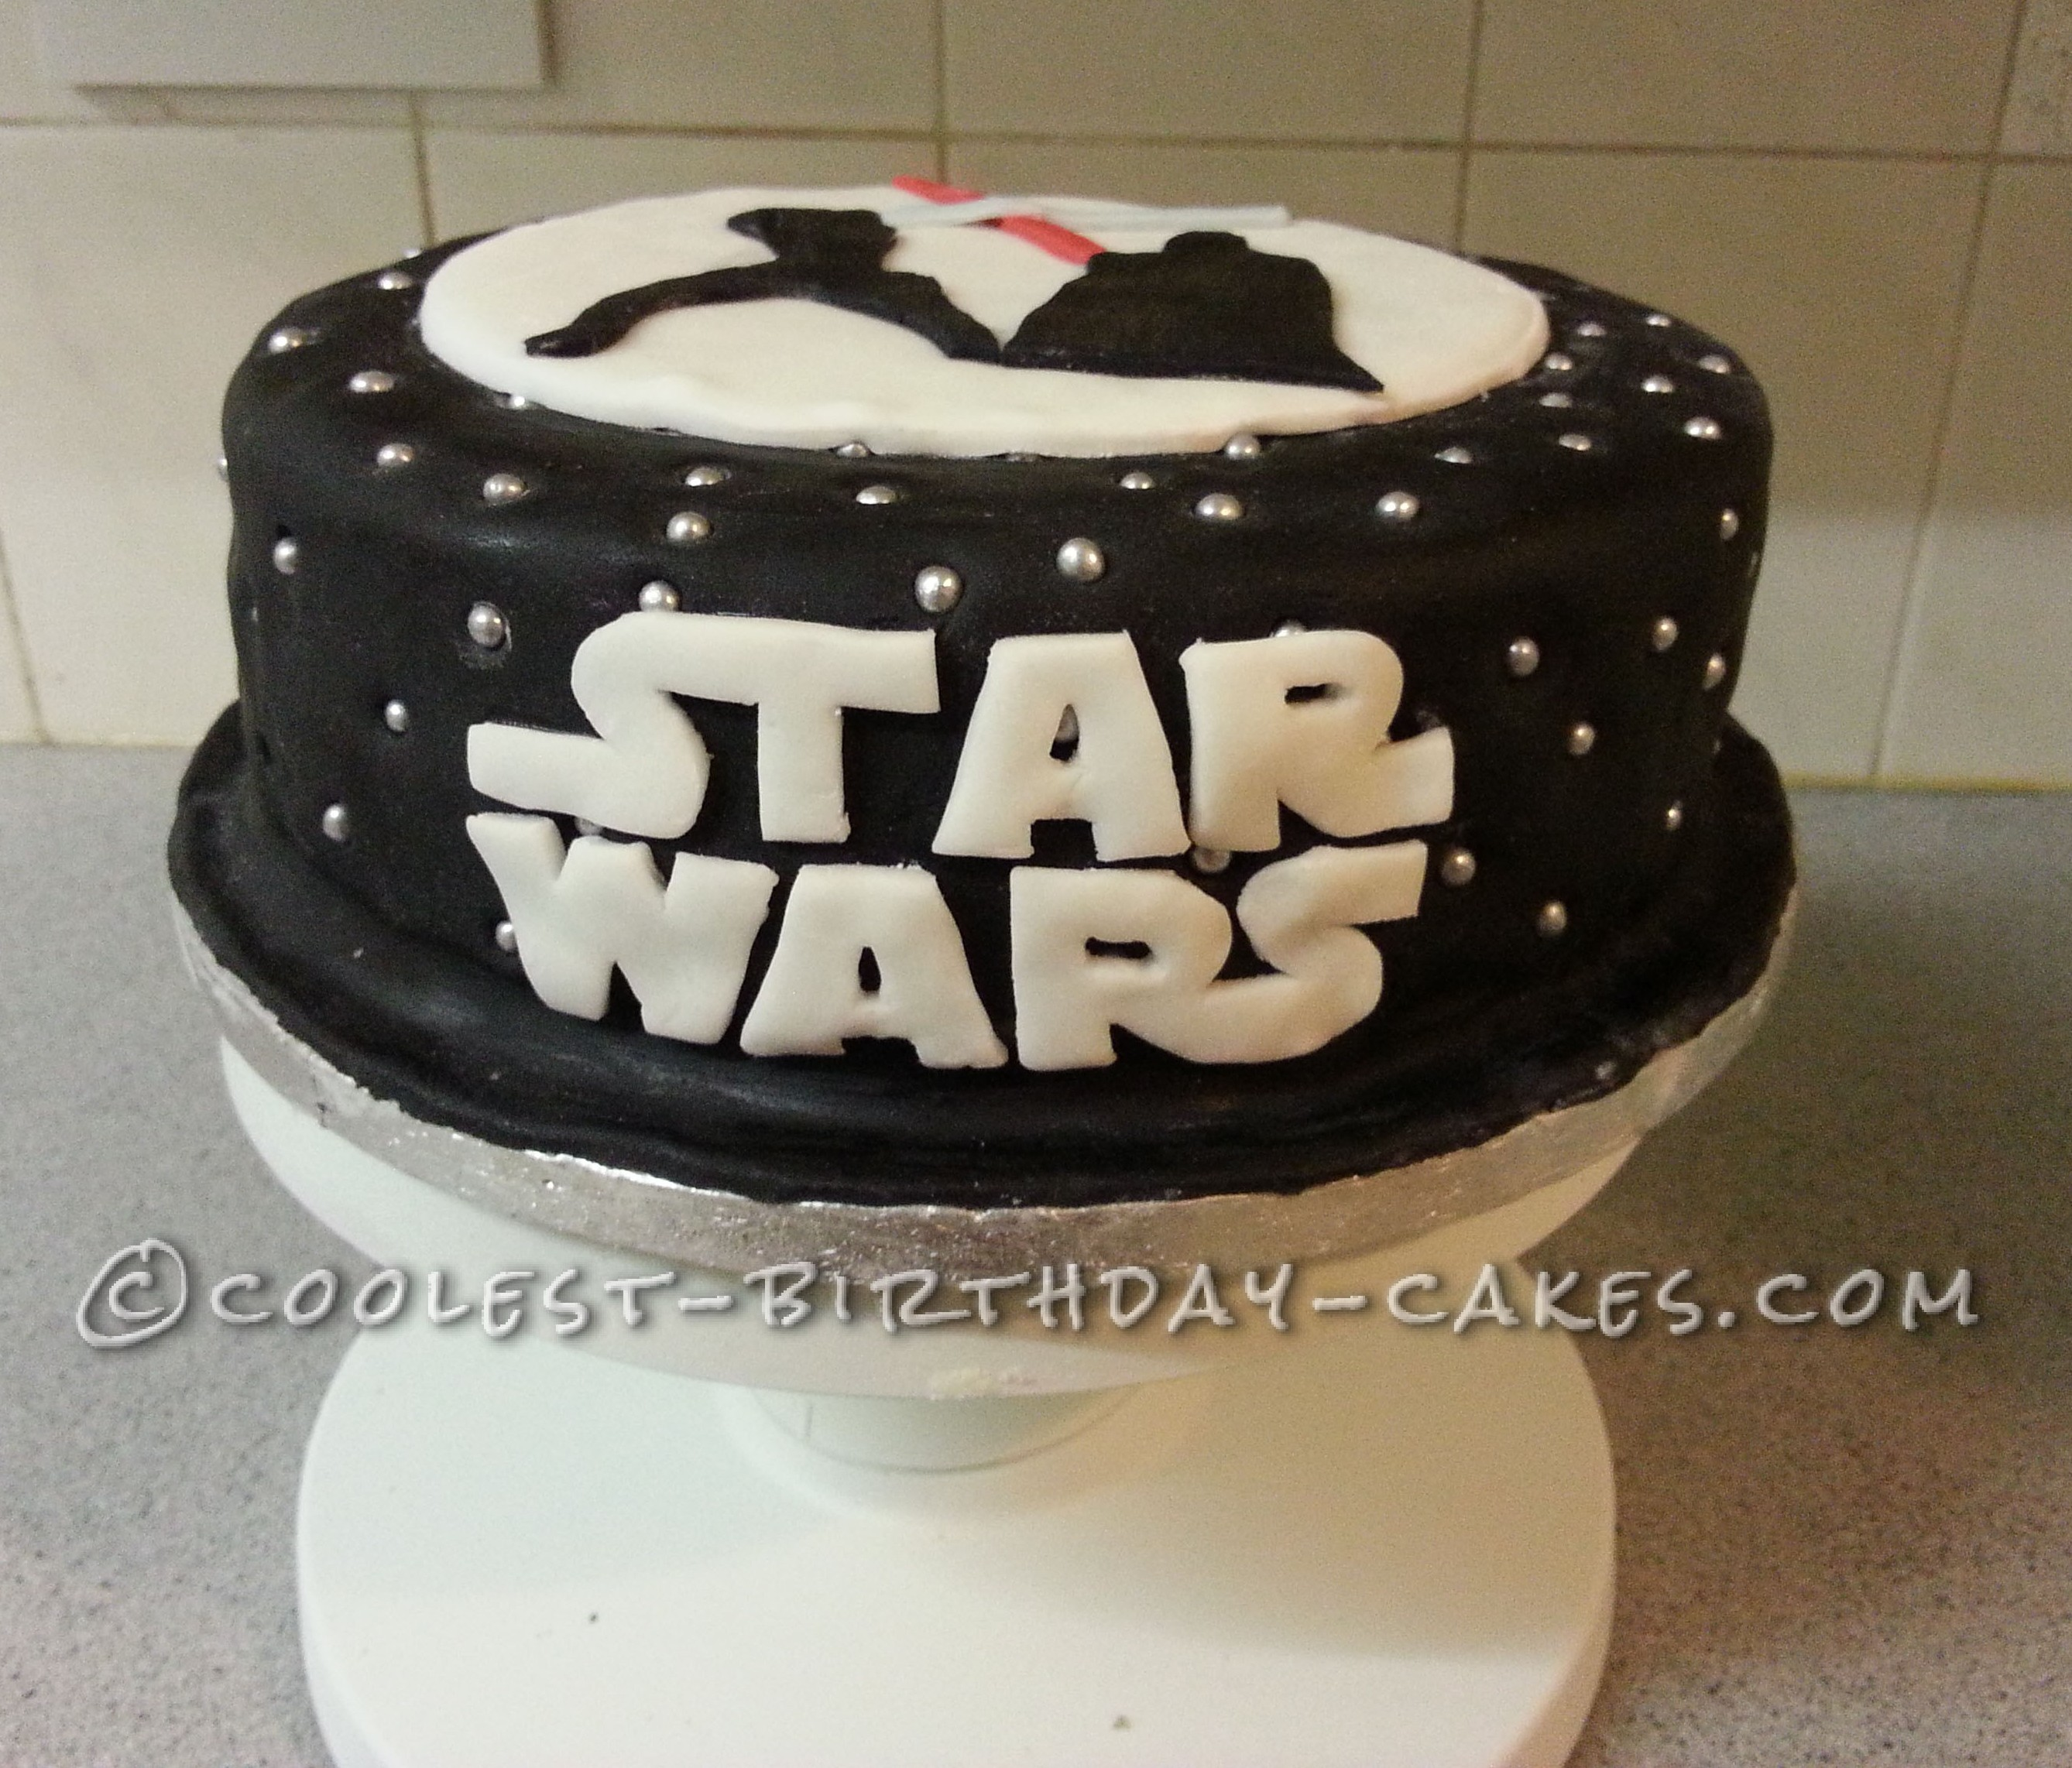 Grown Up Star Wars Cake for a Self-Confessed Geek